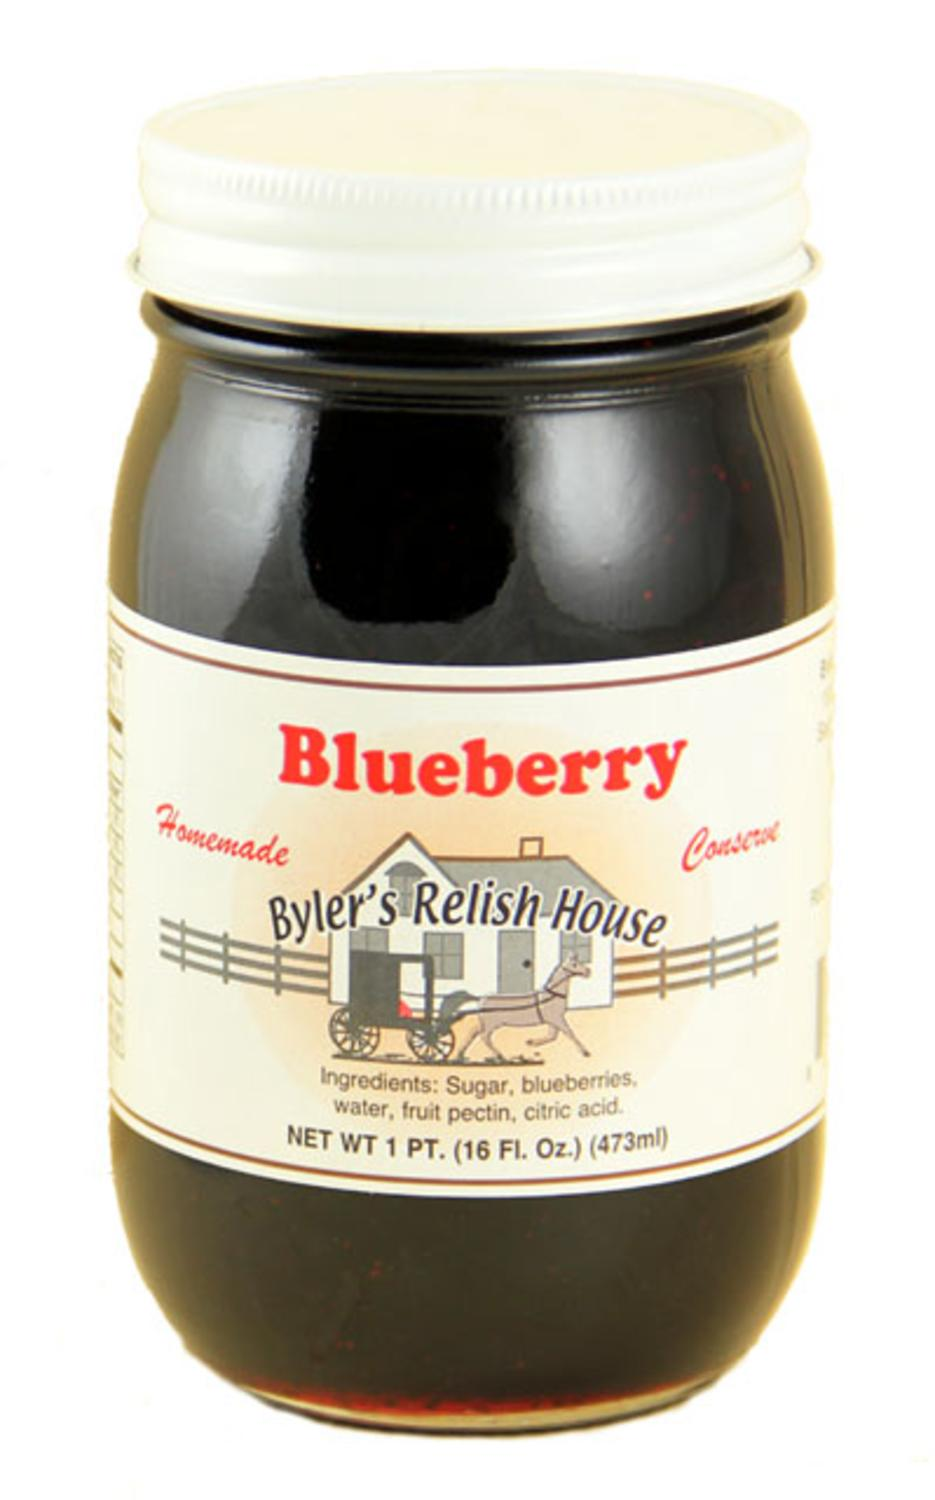 Byler's Relish House Homemade Amish Country Blueberry Jam Fruit Spread 16 oz. by Byler's Relish House